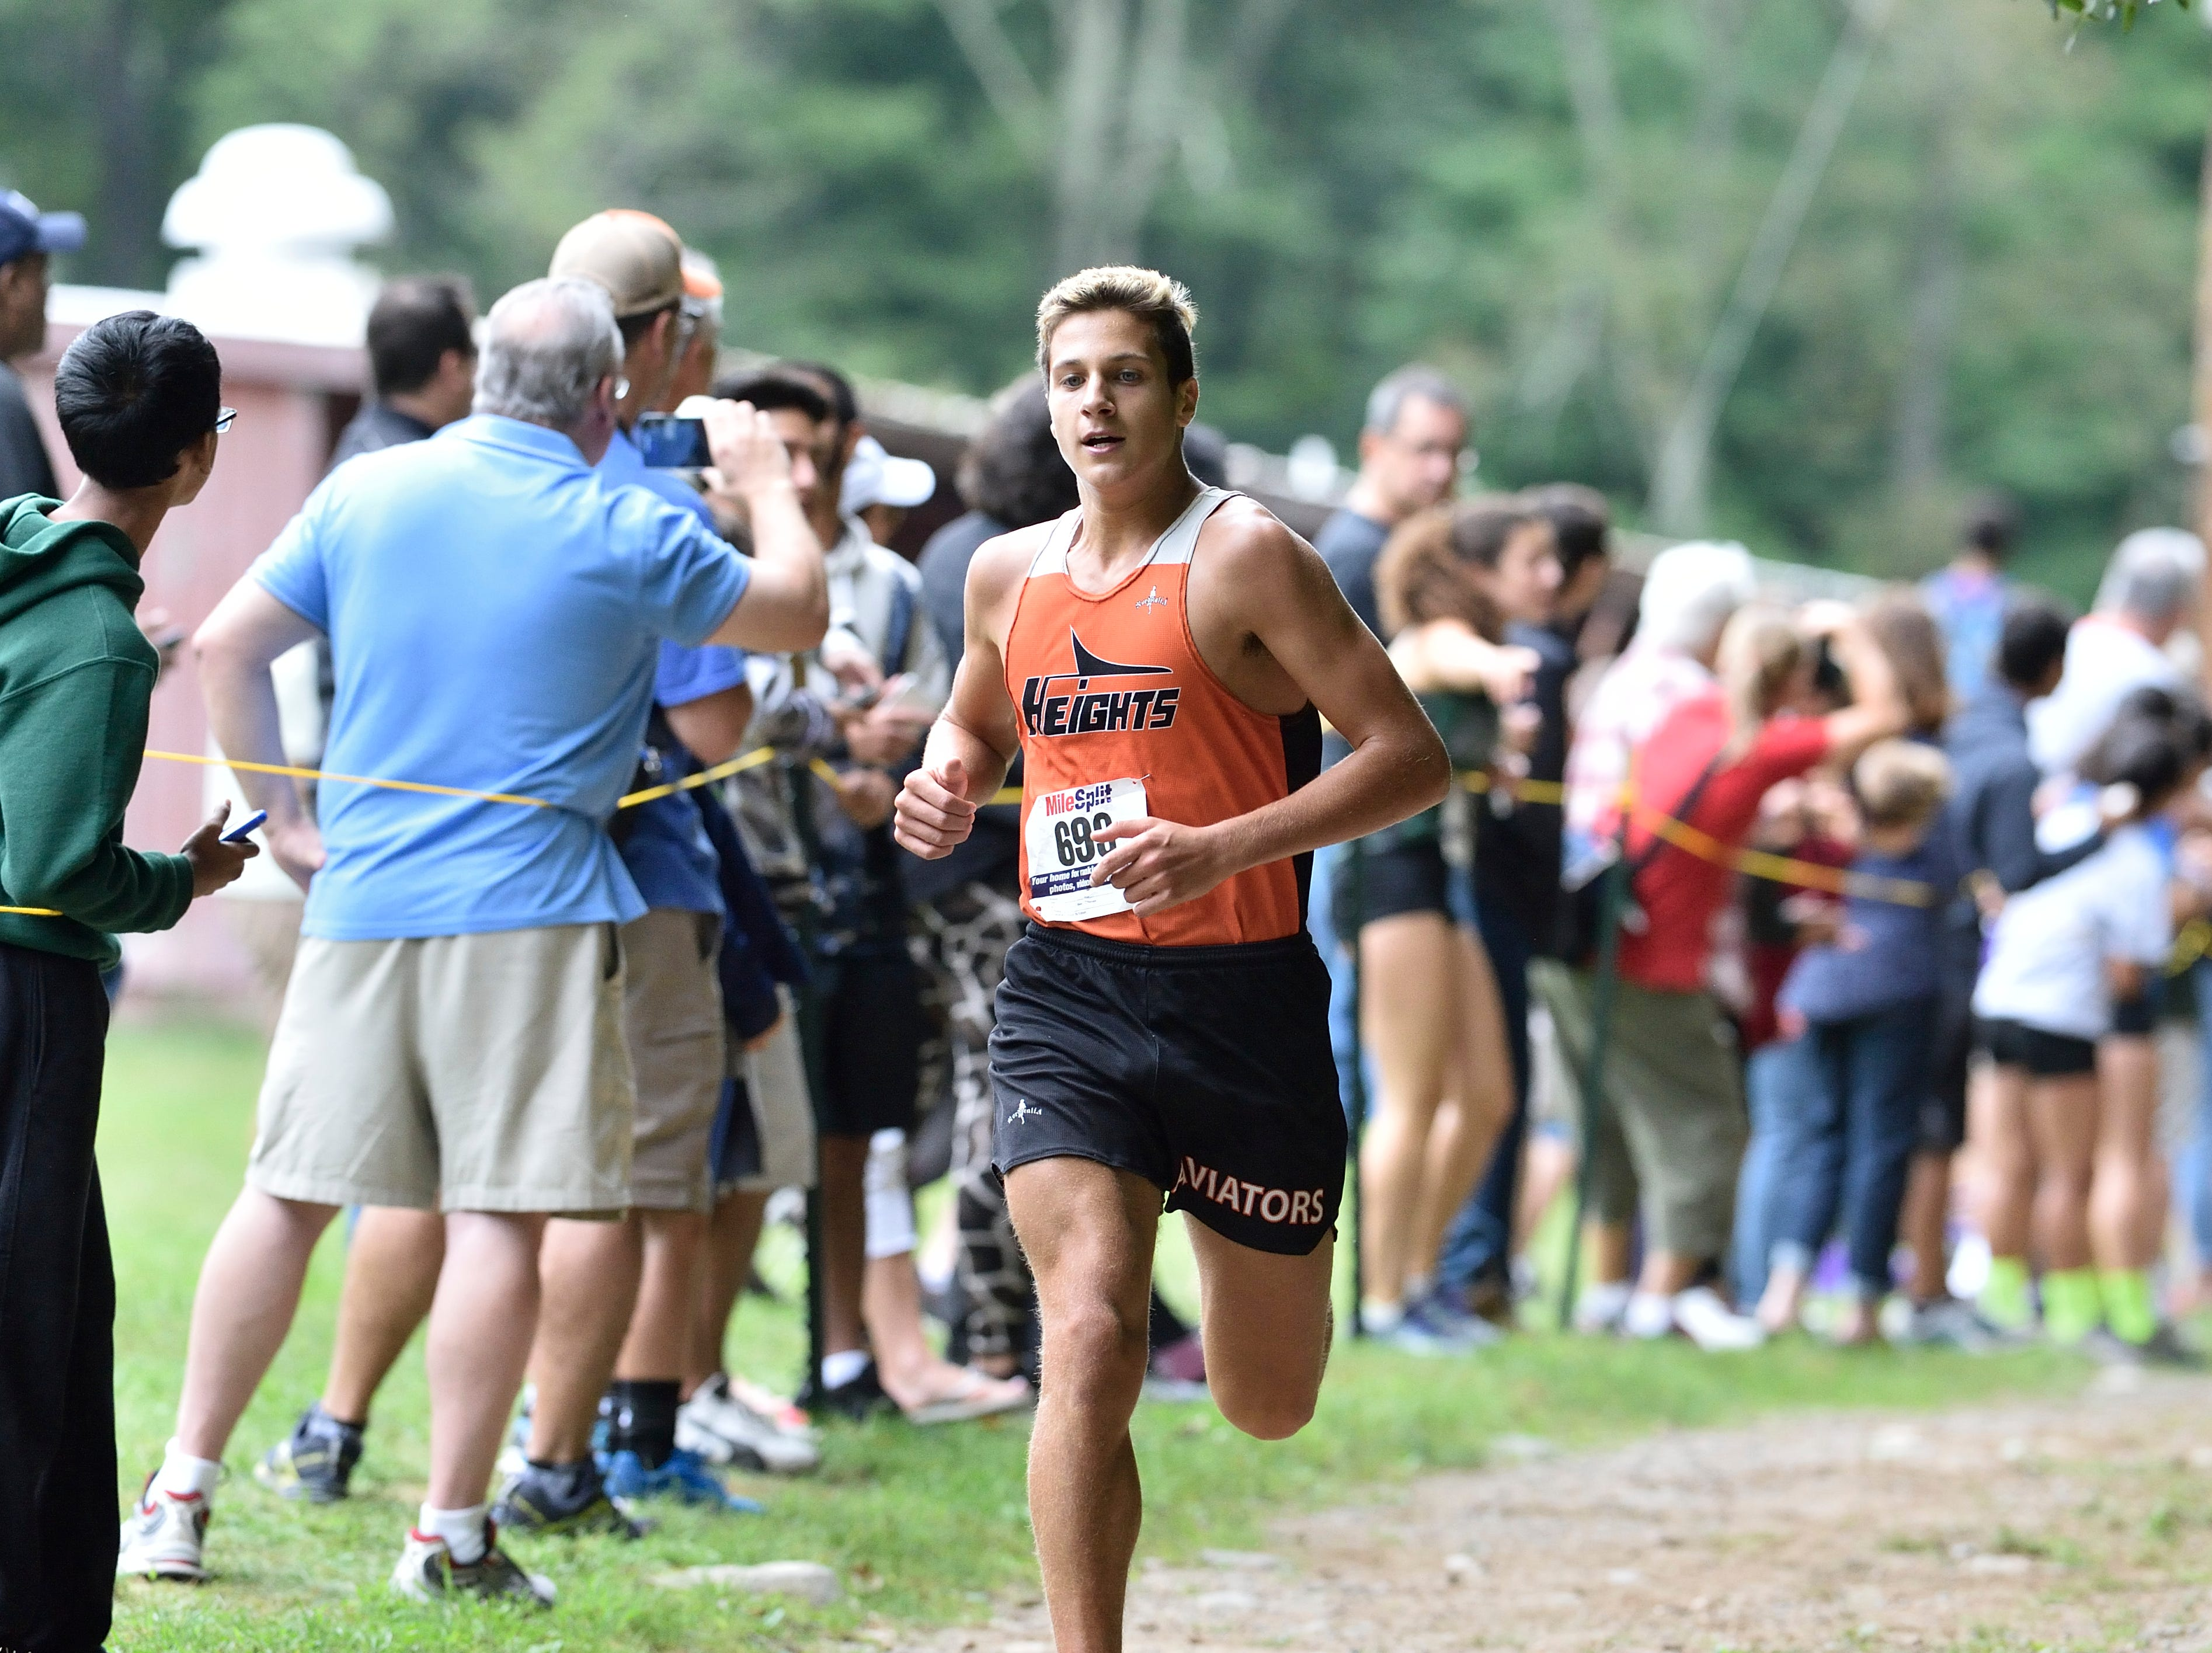 Jeremy Bailey of Hasbrouck Heights HS competes in the boys varsity C cross country race at Darlington County Park in Mahwah.